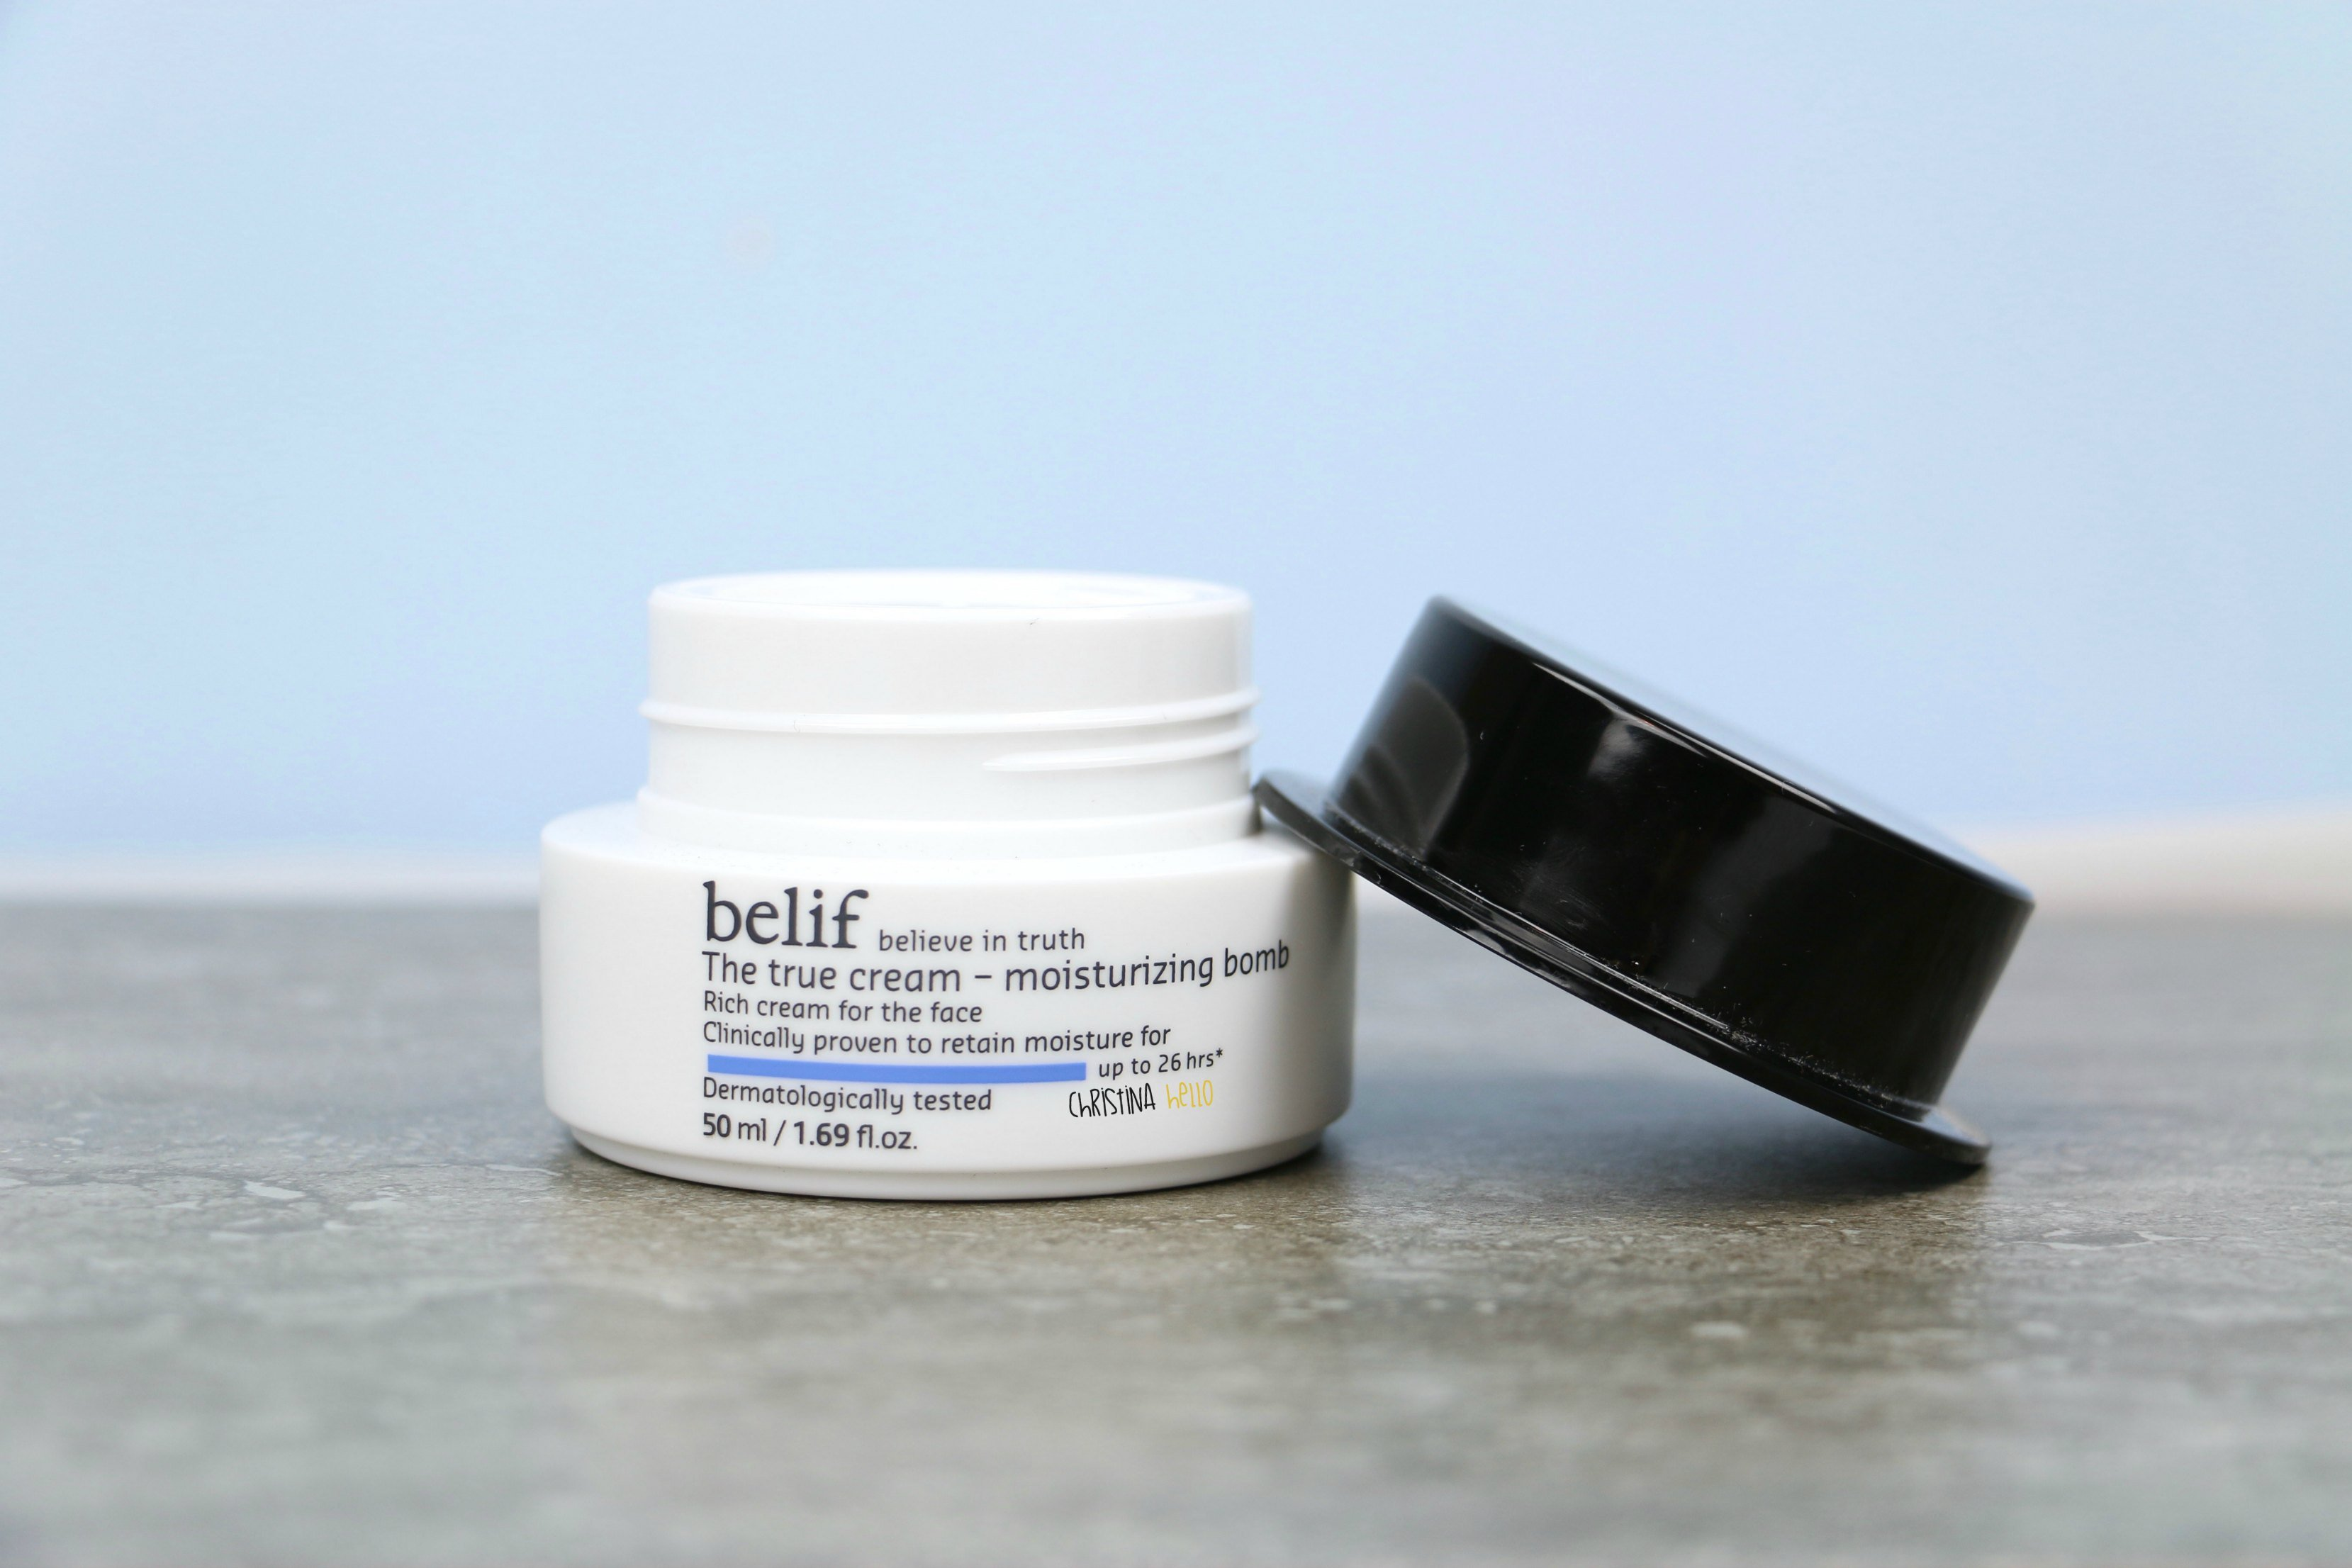 belif Moisturizing Bomb and Aqua Bomb Review – Christinahello